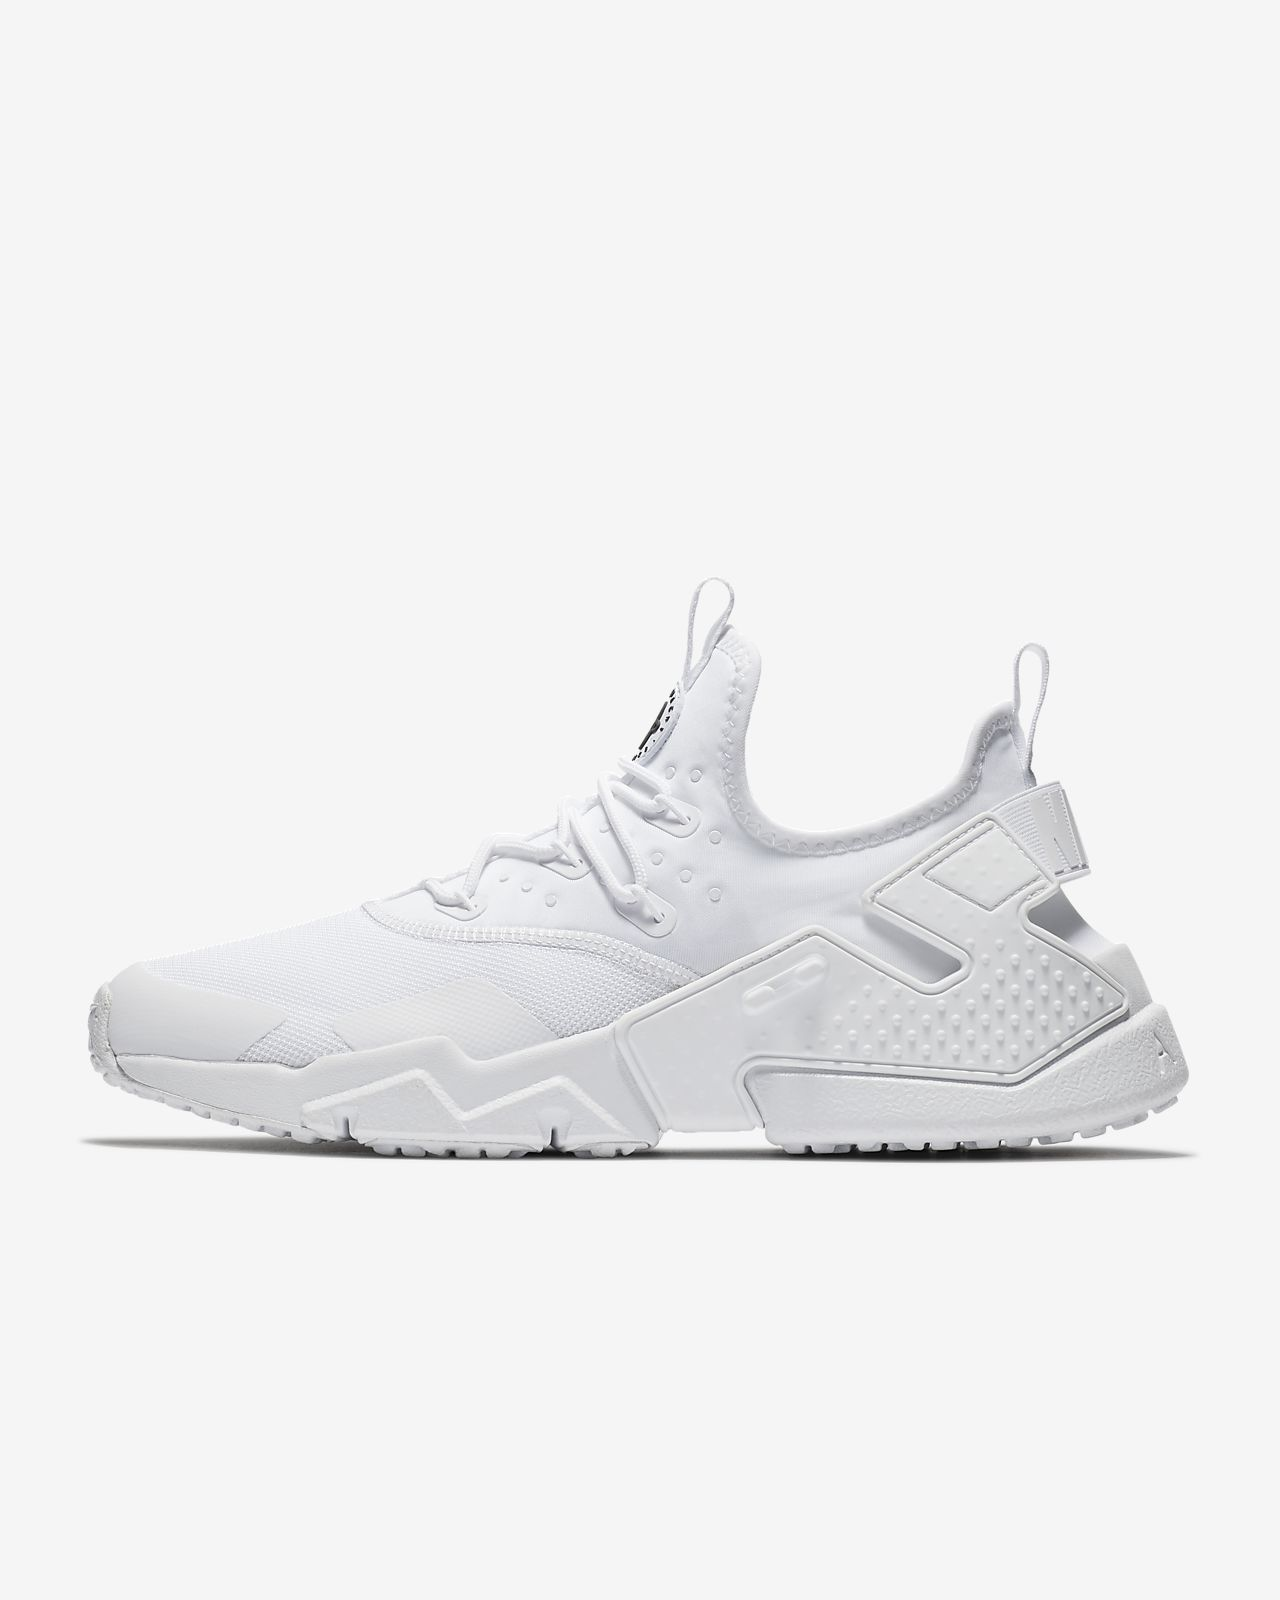 official photos eaf4d 5b929 ... Nike Air Huarache Drift Men s Shoe